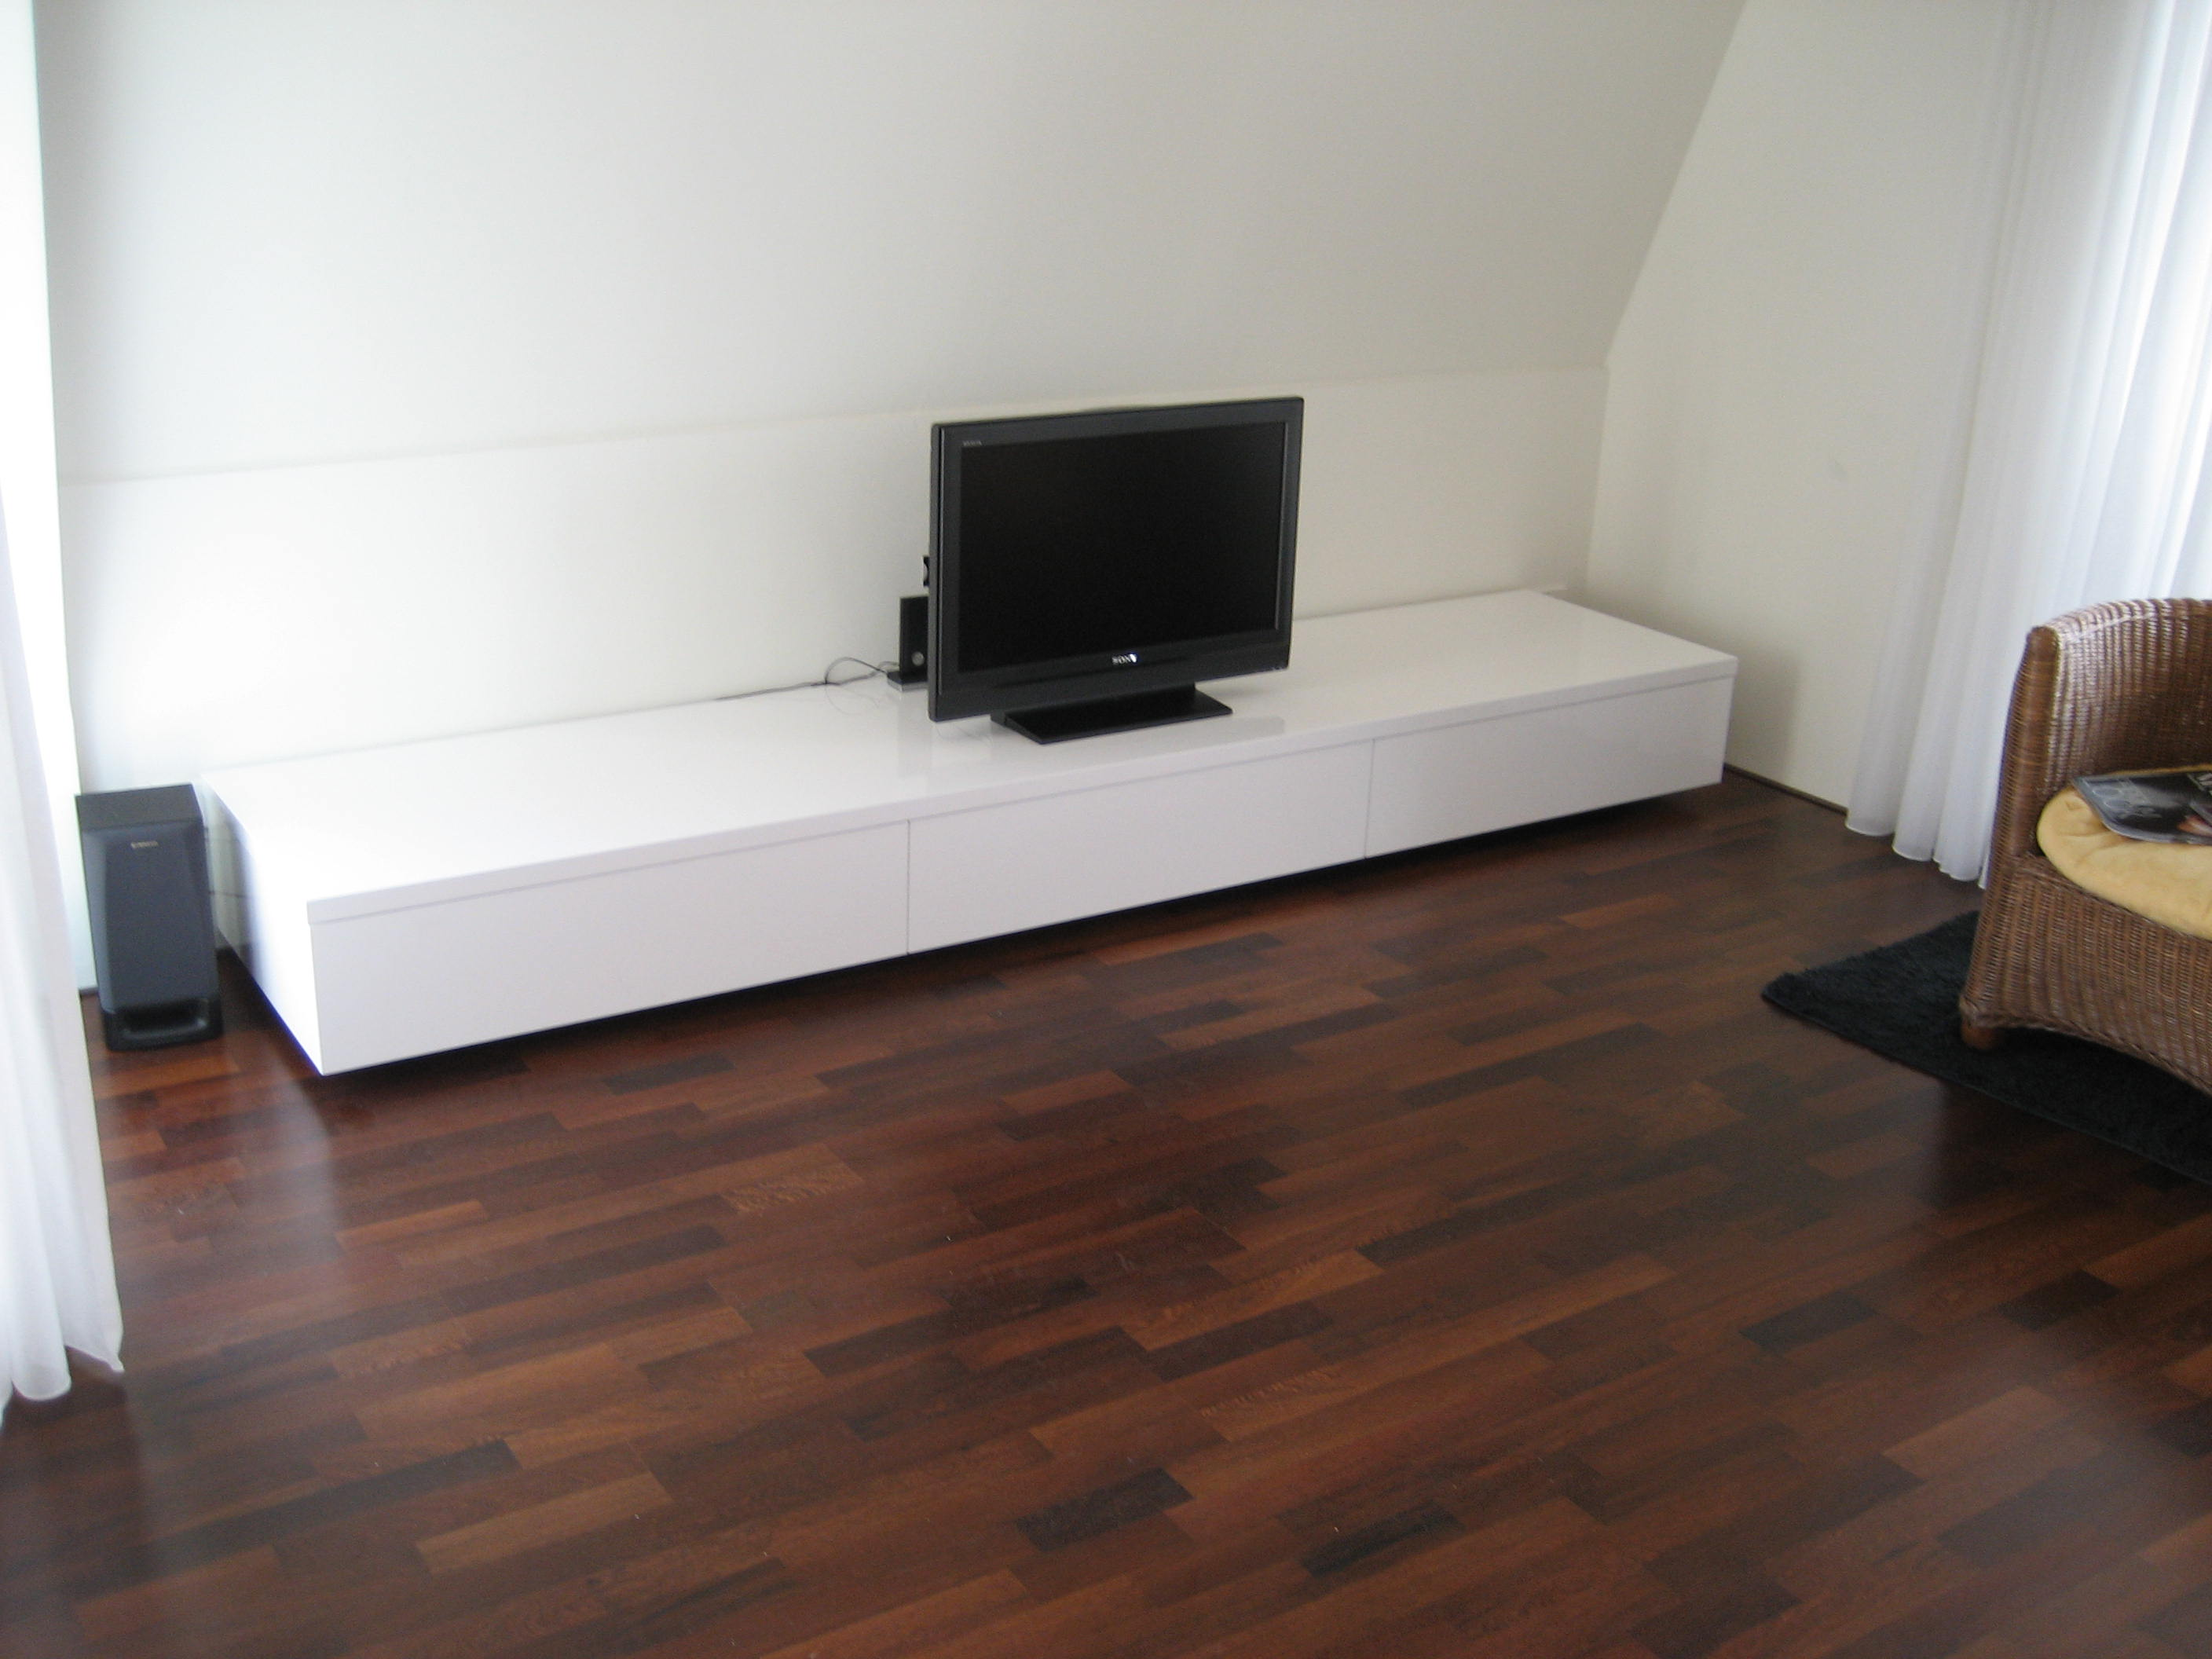 lowboard ikea ber ideen zu lowboard ikea auf tv wand im raum wei und lowboard hifi forum. Black Bedroom Furniture Sets. Home Design Ideas